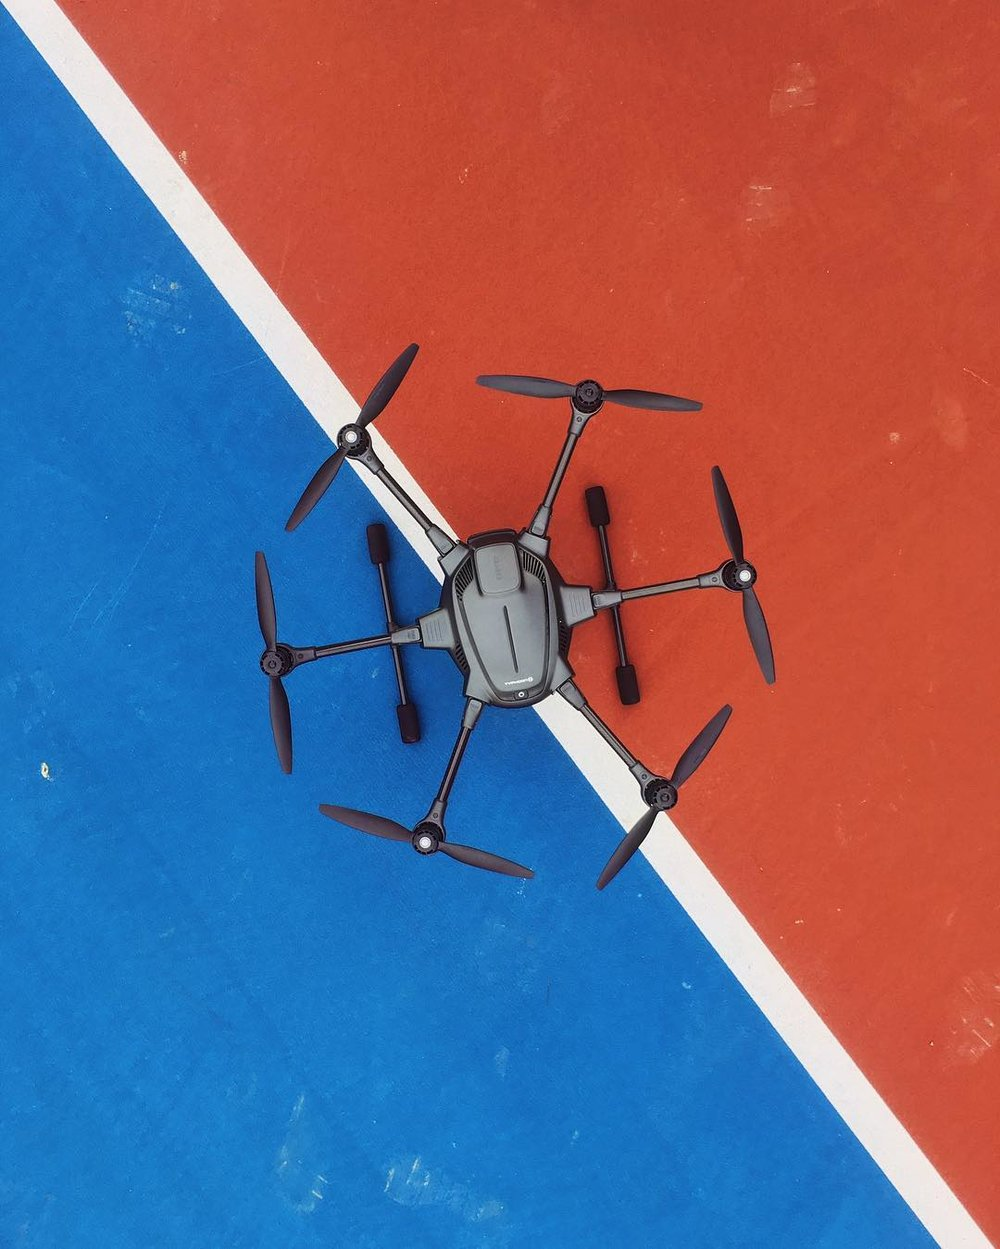 Griswold-Yuneec-Typhoon-H-Drone-Photography-Product+1.jpg